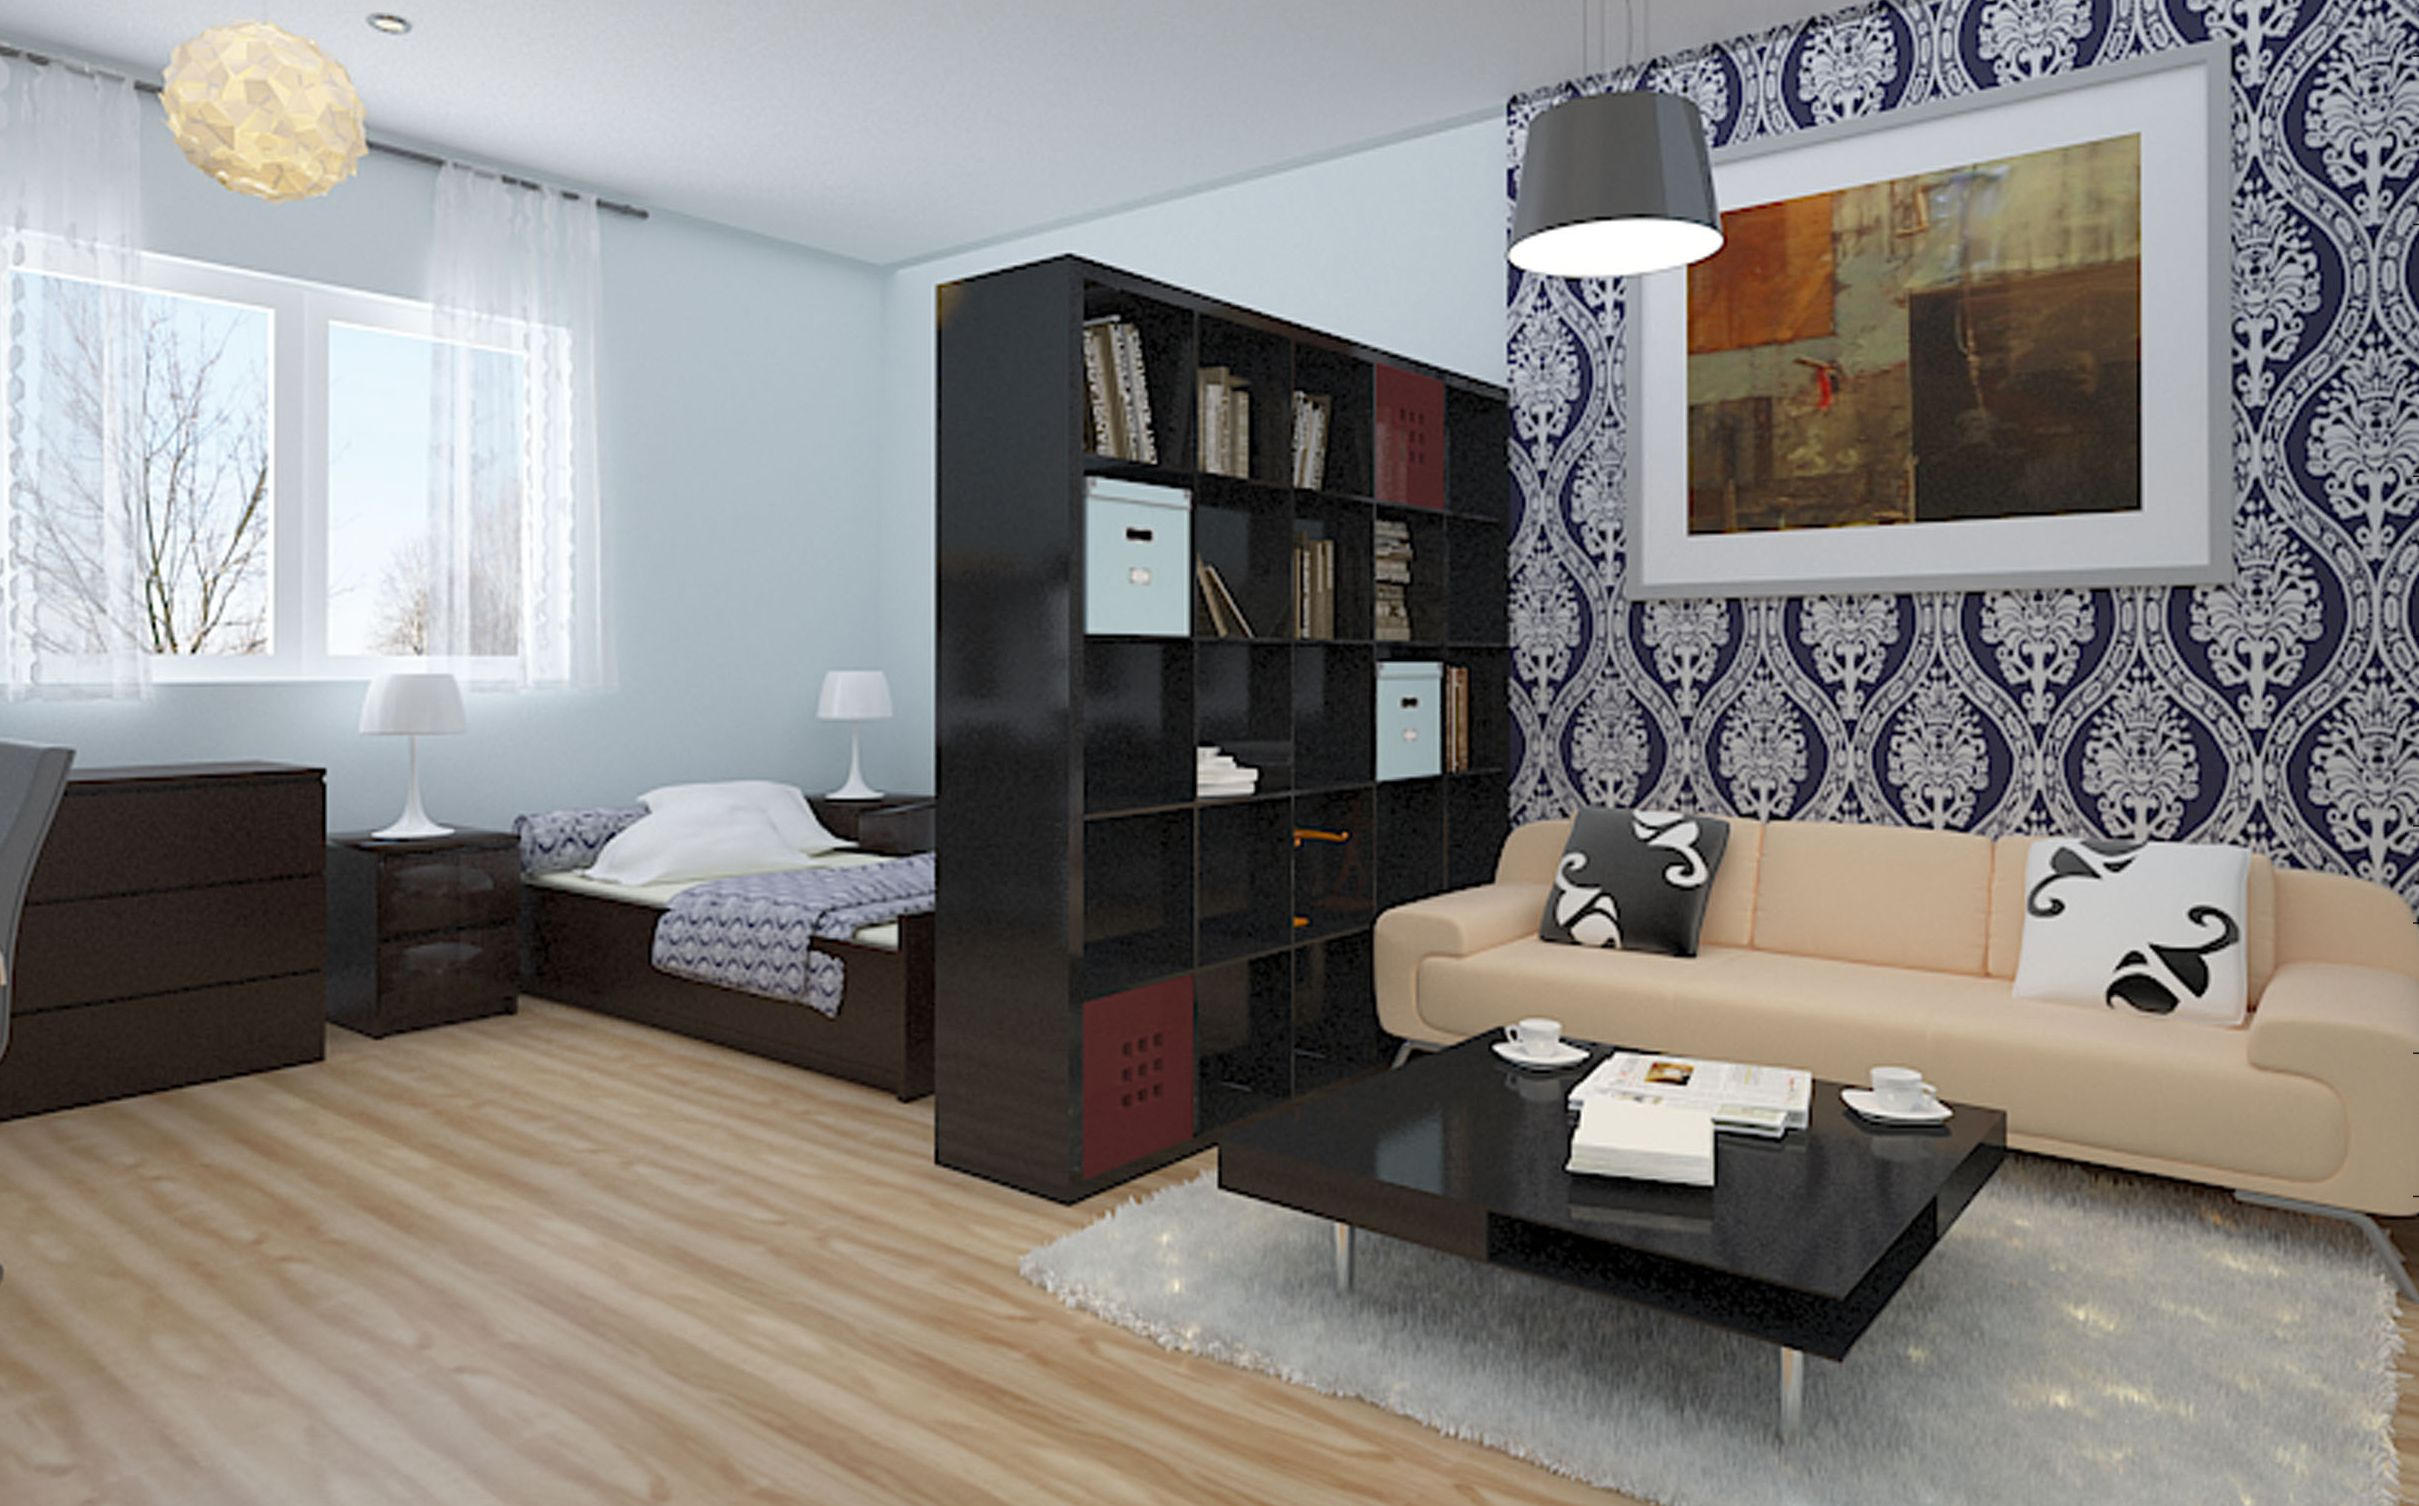 interior design ideas for studio apartments - sriganeshdosahouse